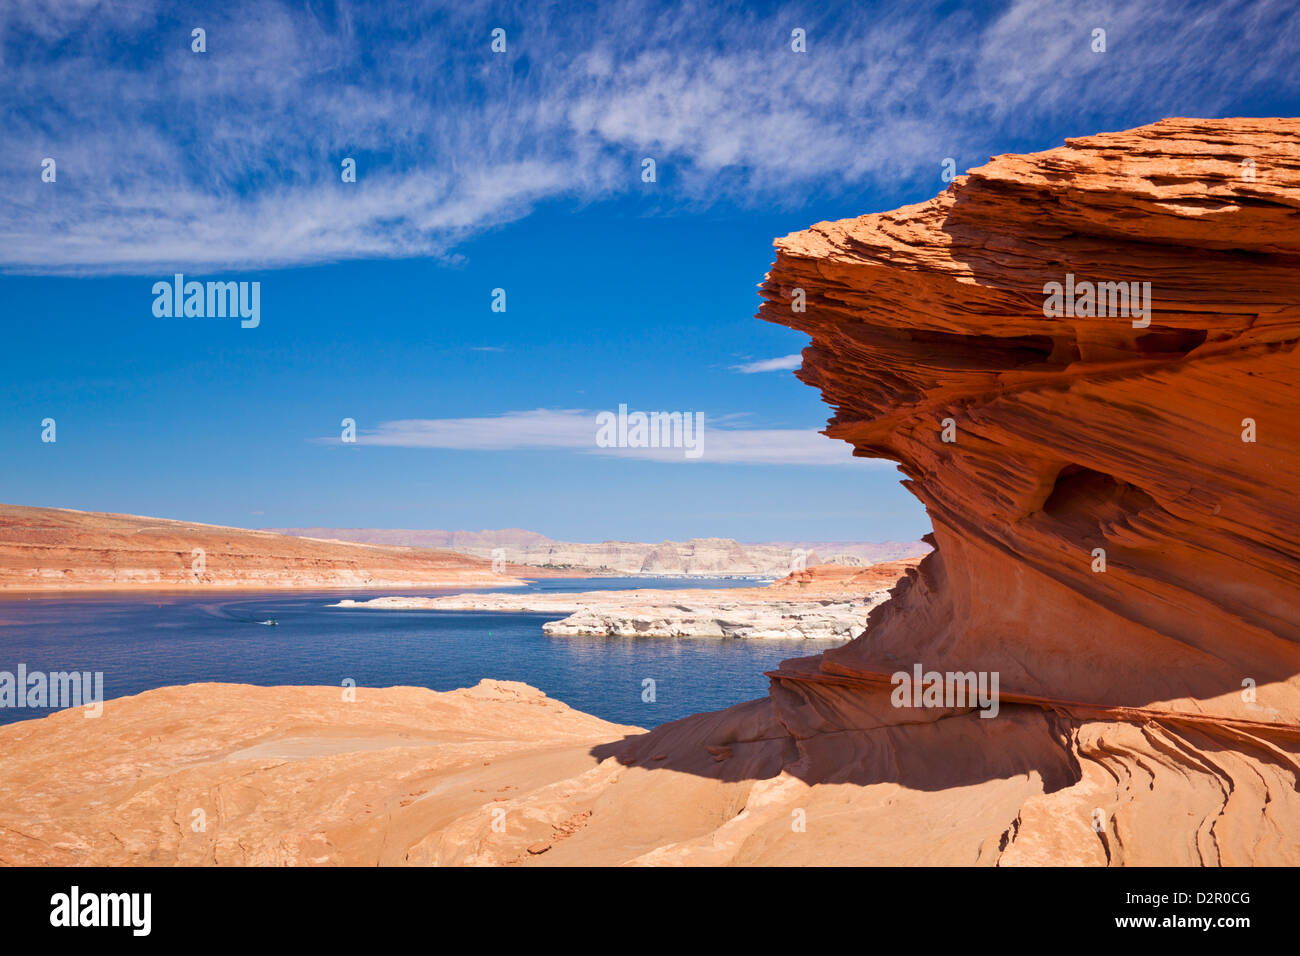 Red Rock formations, Lake Powell, Page, Arizona, United States of America, North America - Stock Image